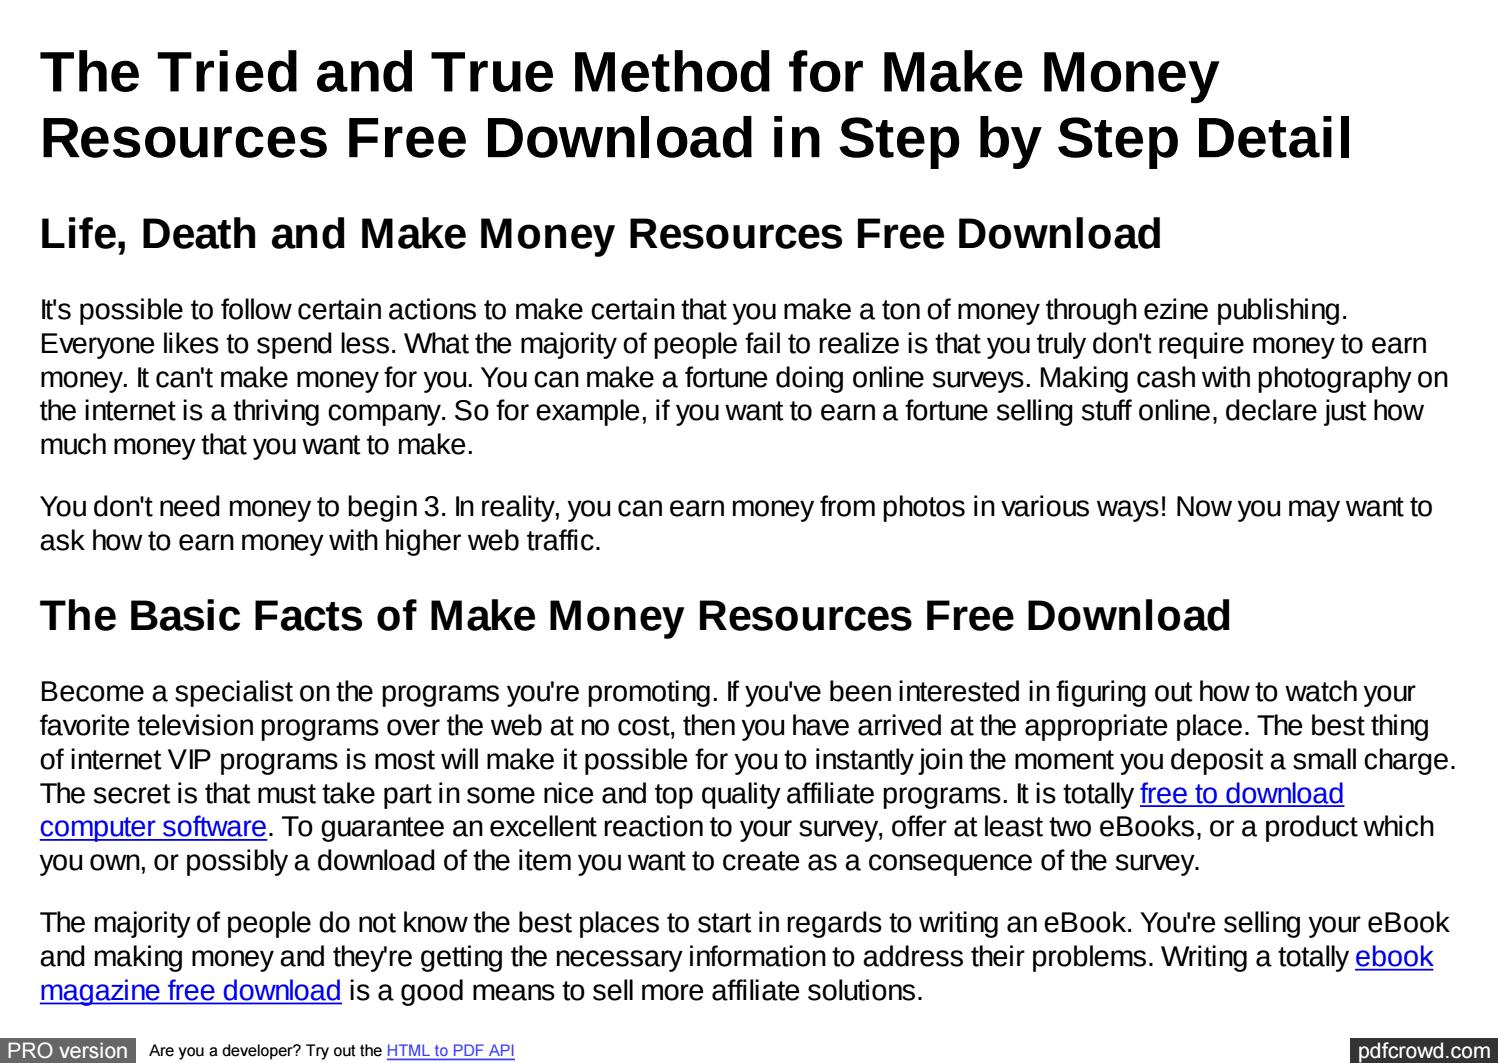 The Tried and True Method for Make Money Resources Free